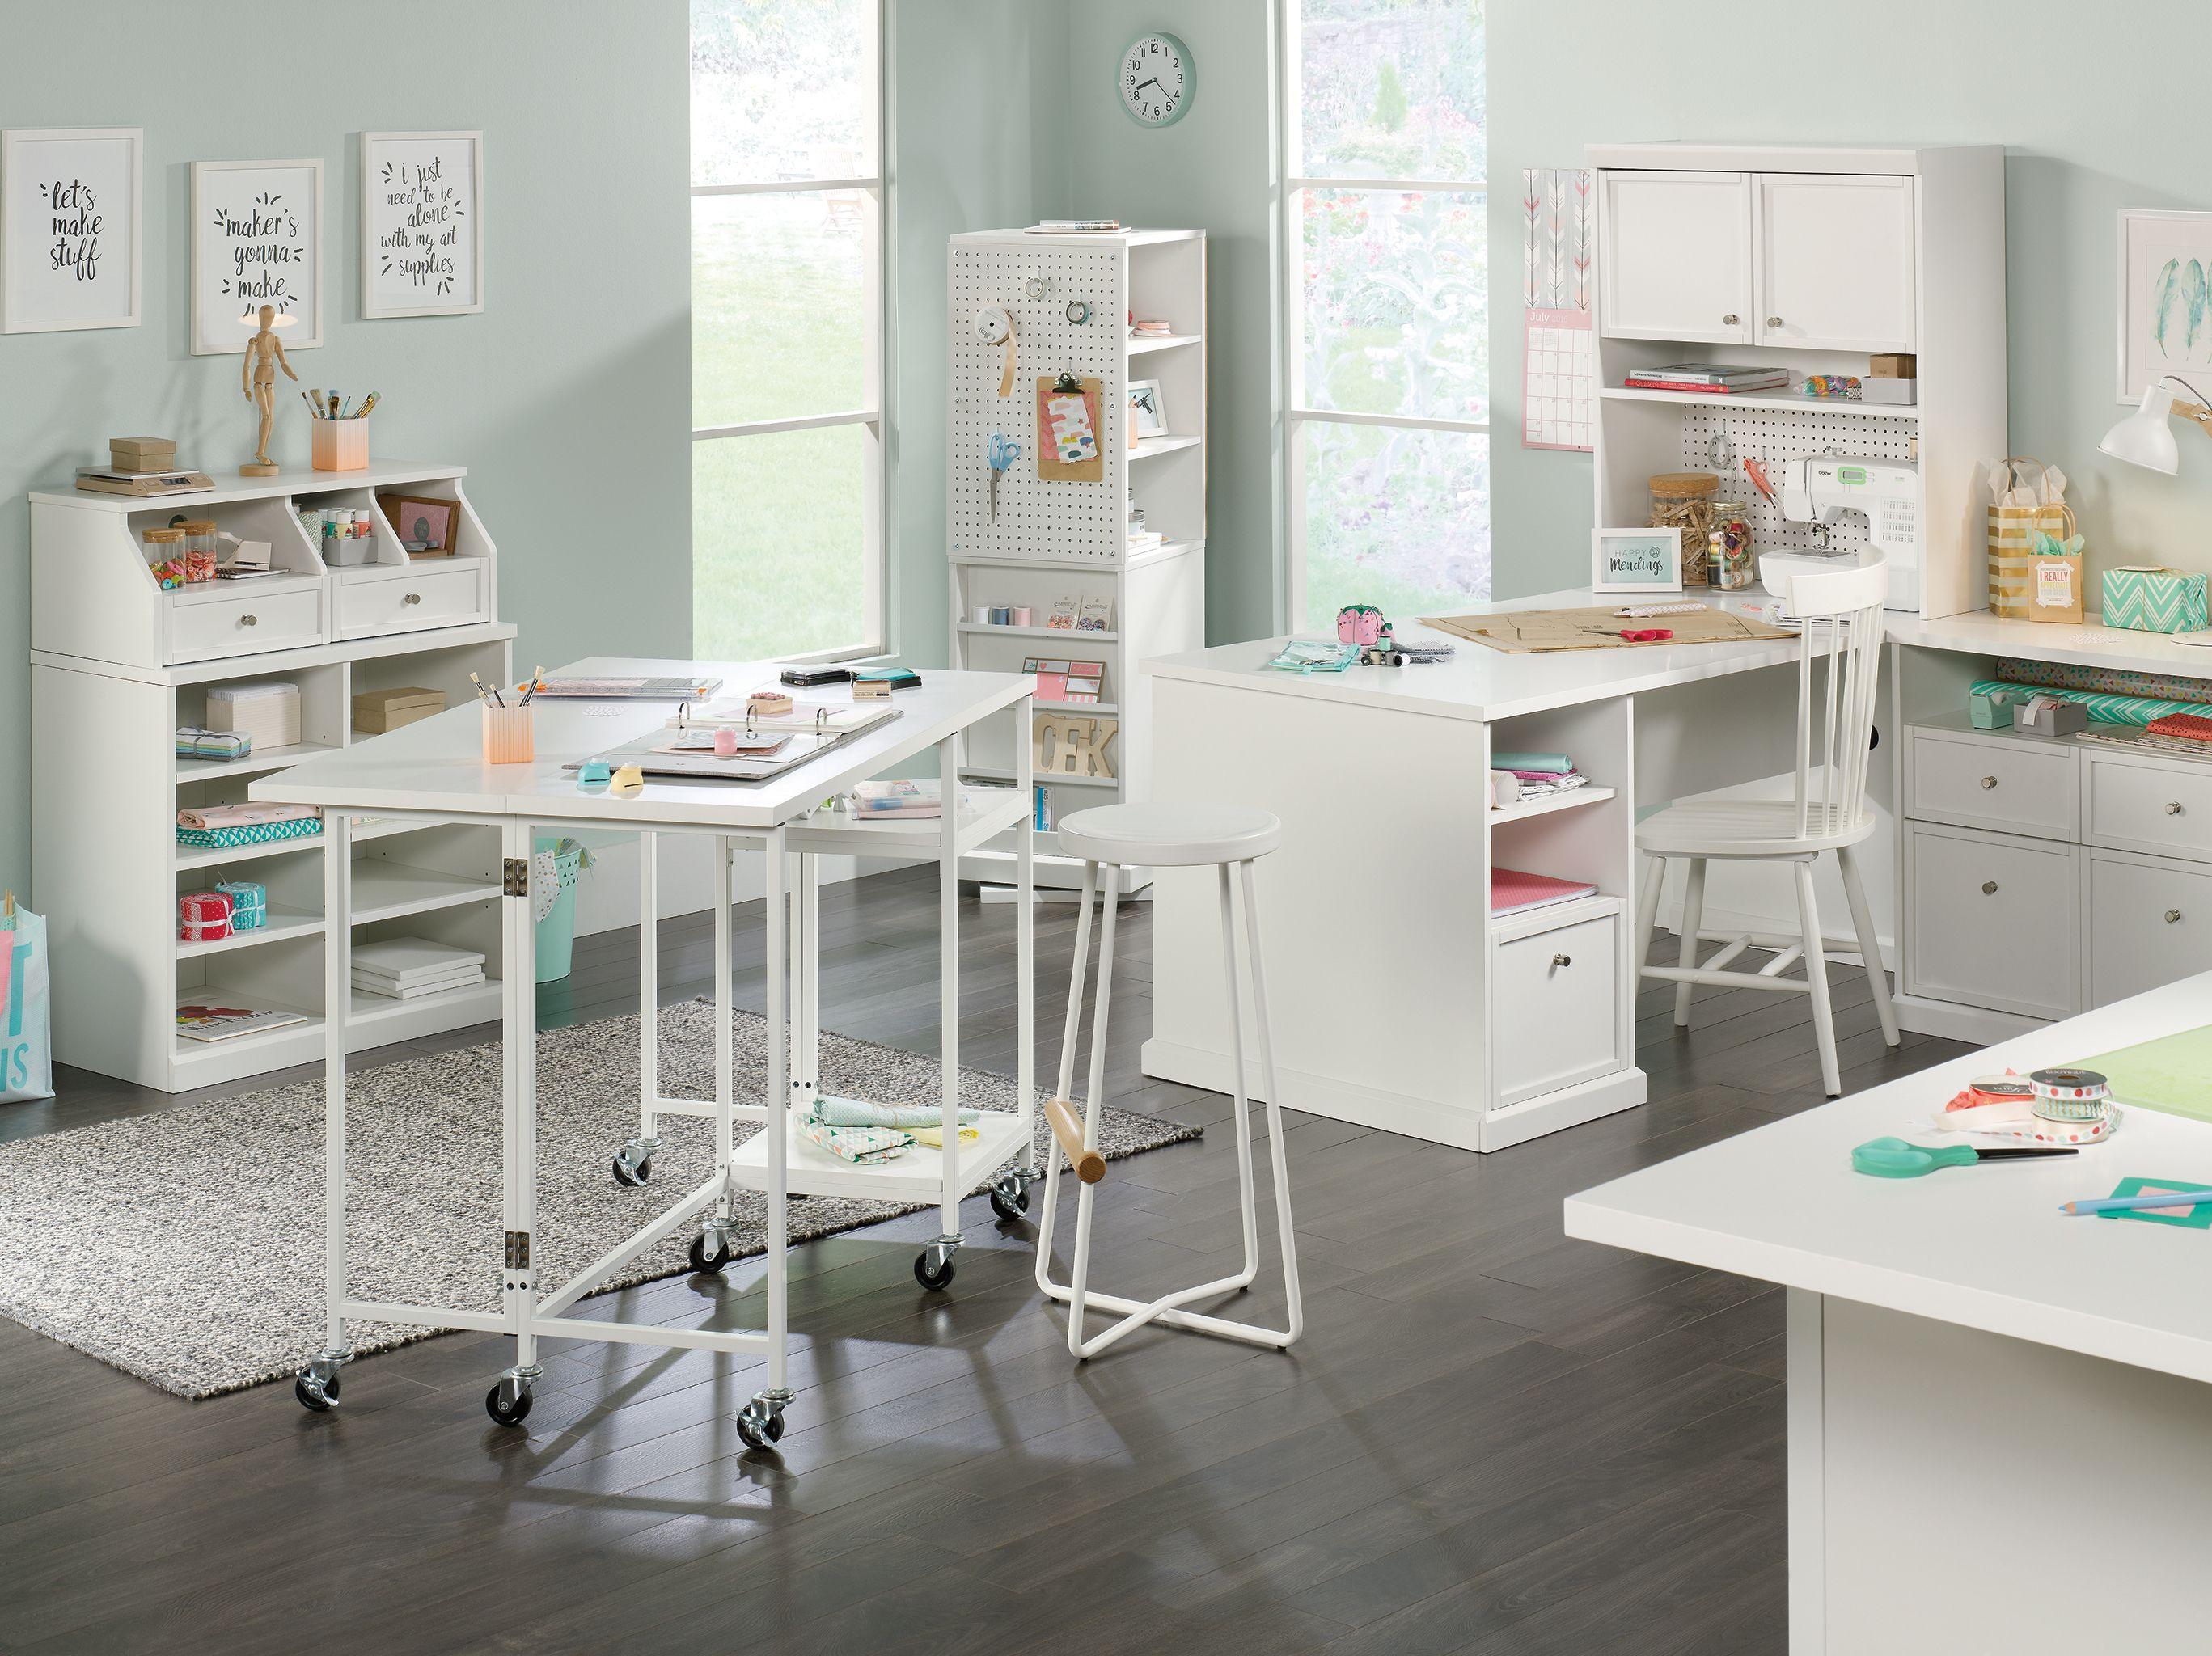 Pin By Christina Keyes Liverman On Craft And Toy Org In 2021 Craft Storage Cabinets Craft Tables With Storage Craft Room Office